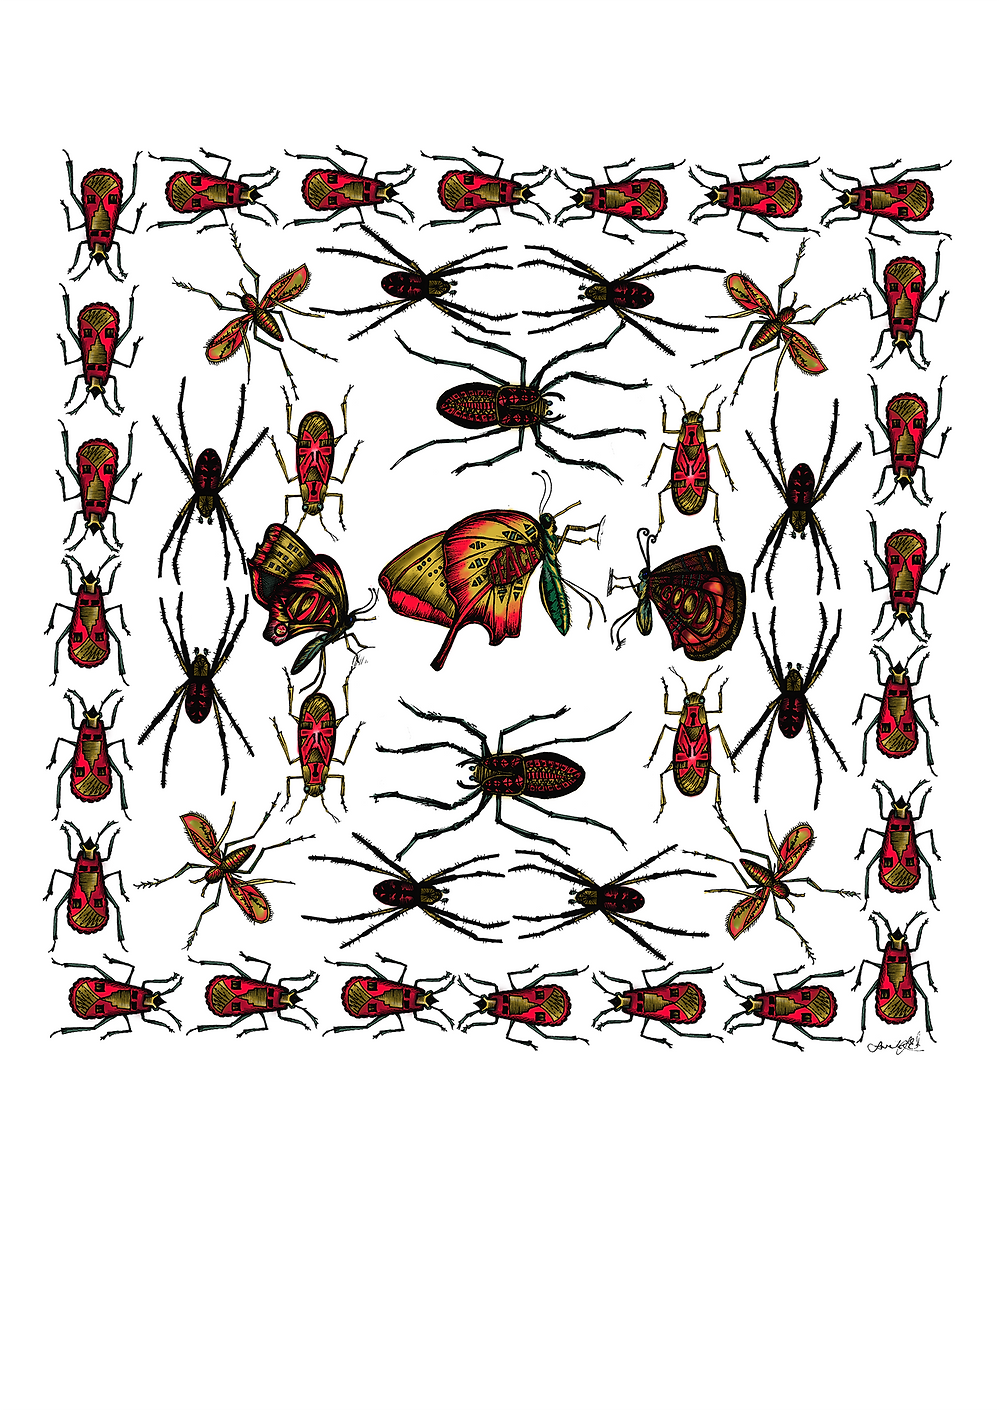 A collection of fictional flies and bugs drawn and painted on computer by Sarah J. Edwards